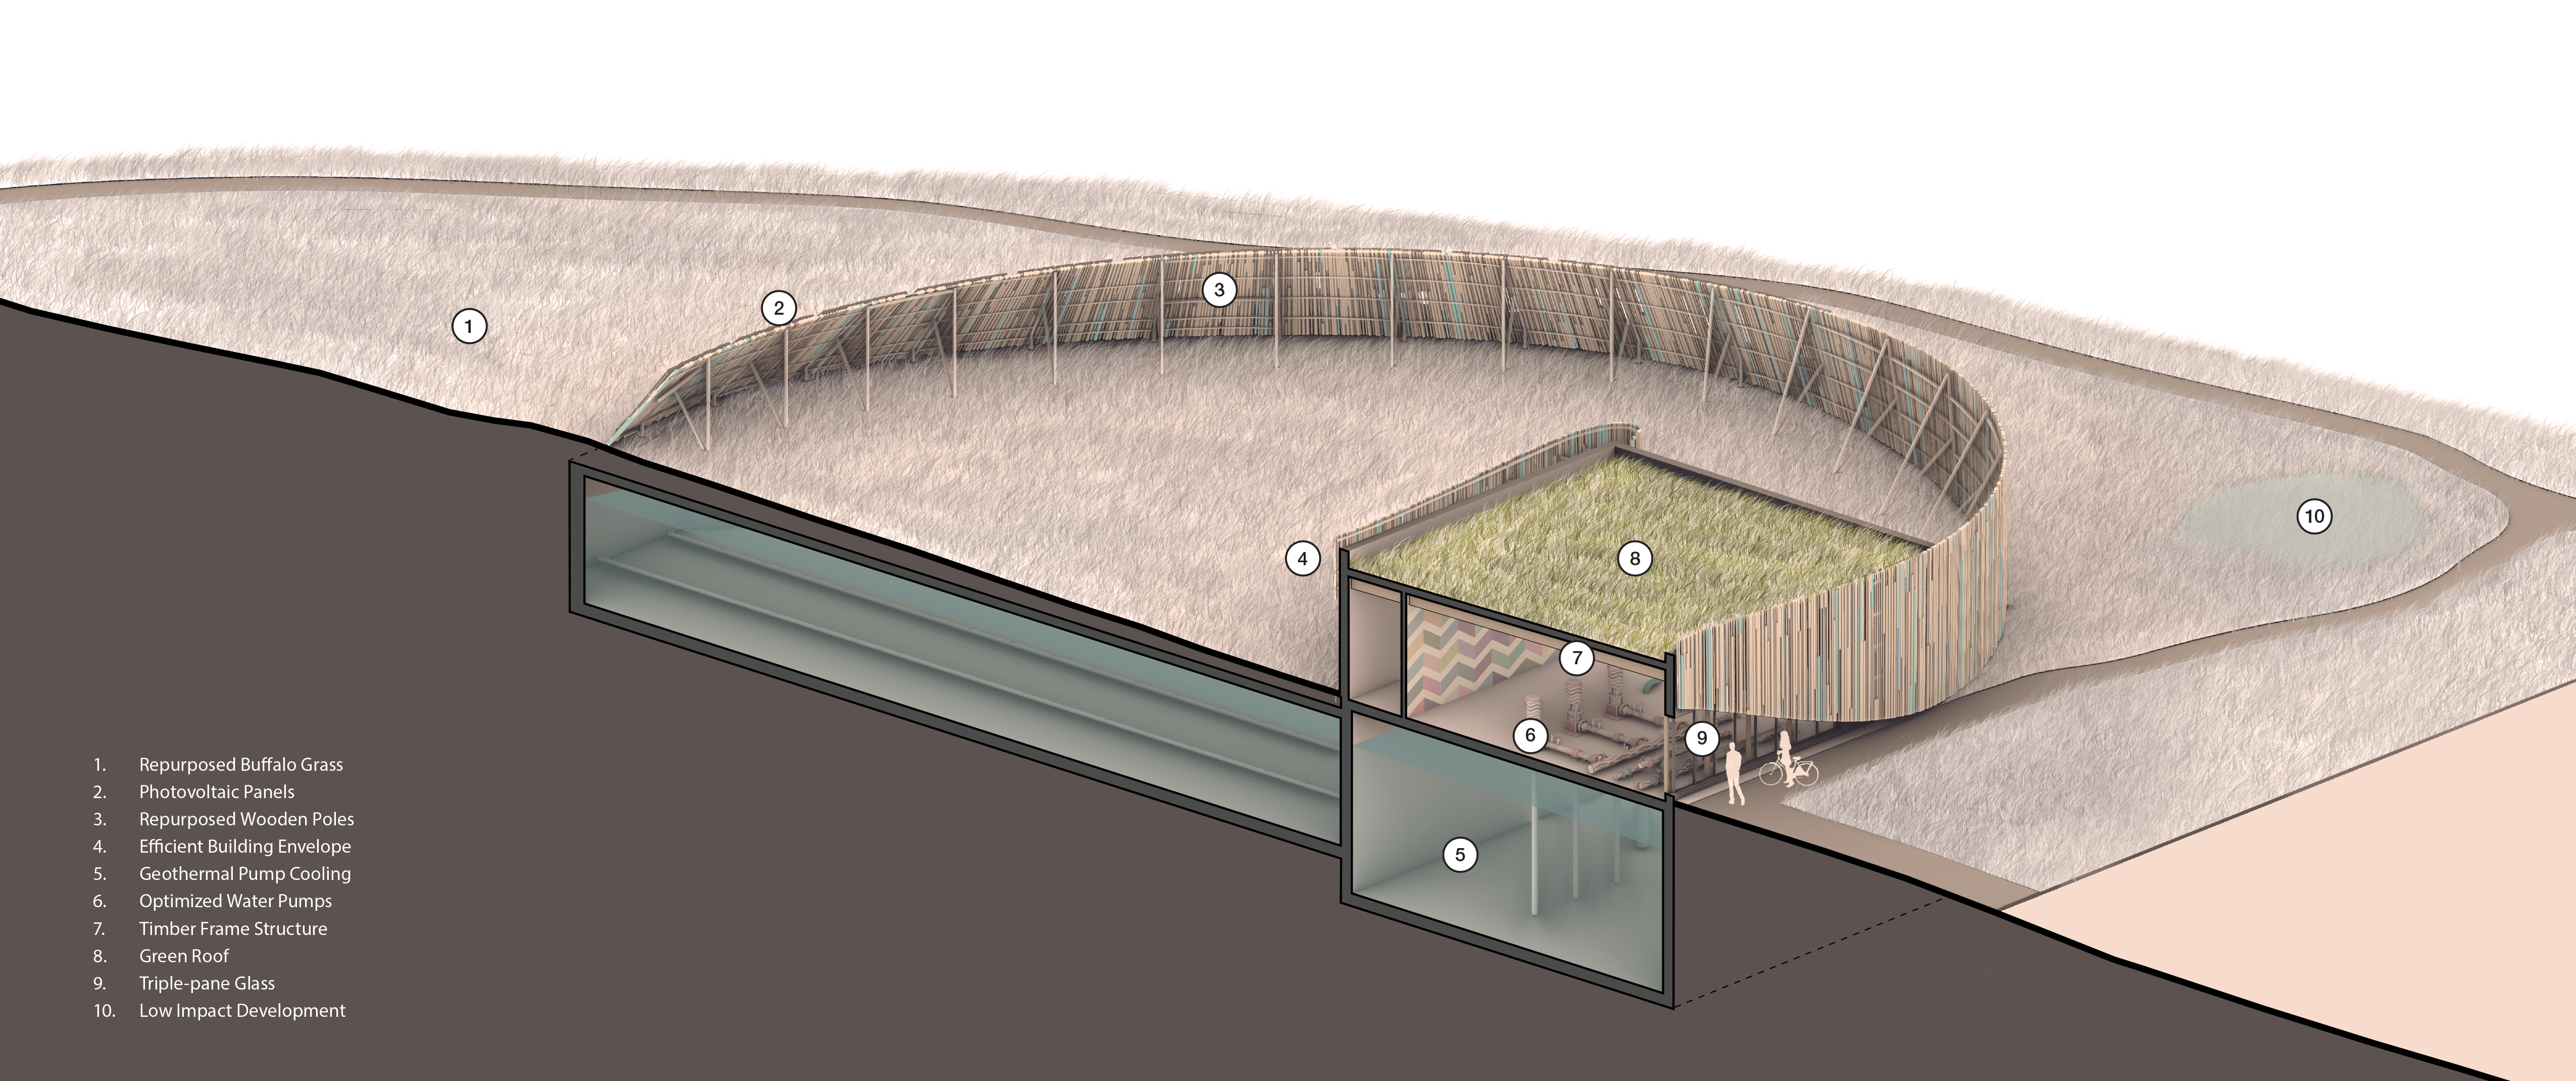 Rendering showing the sustainability components of the Taza Water Reservoir